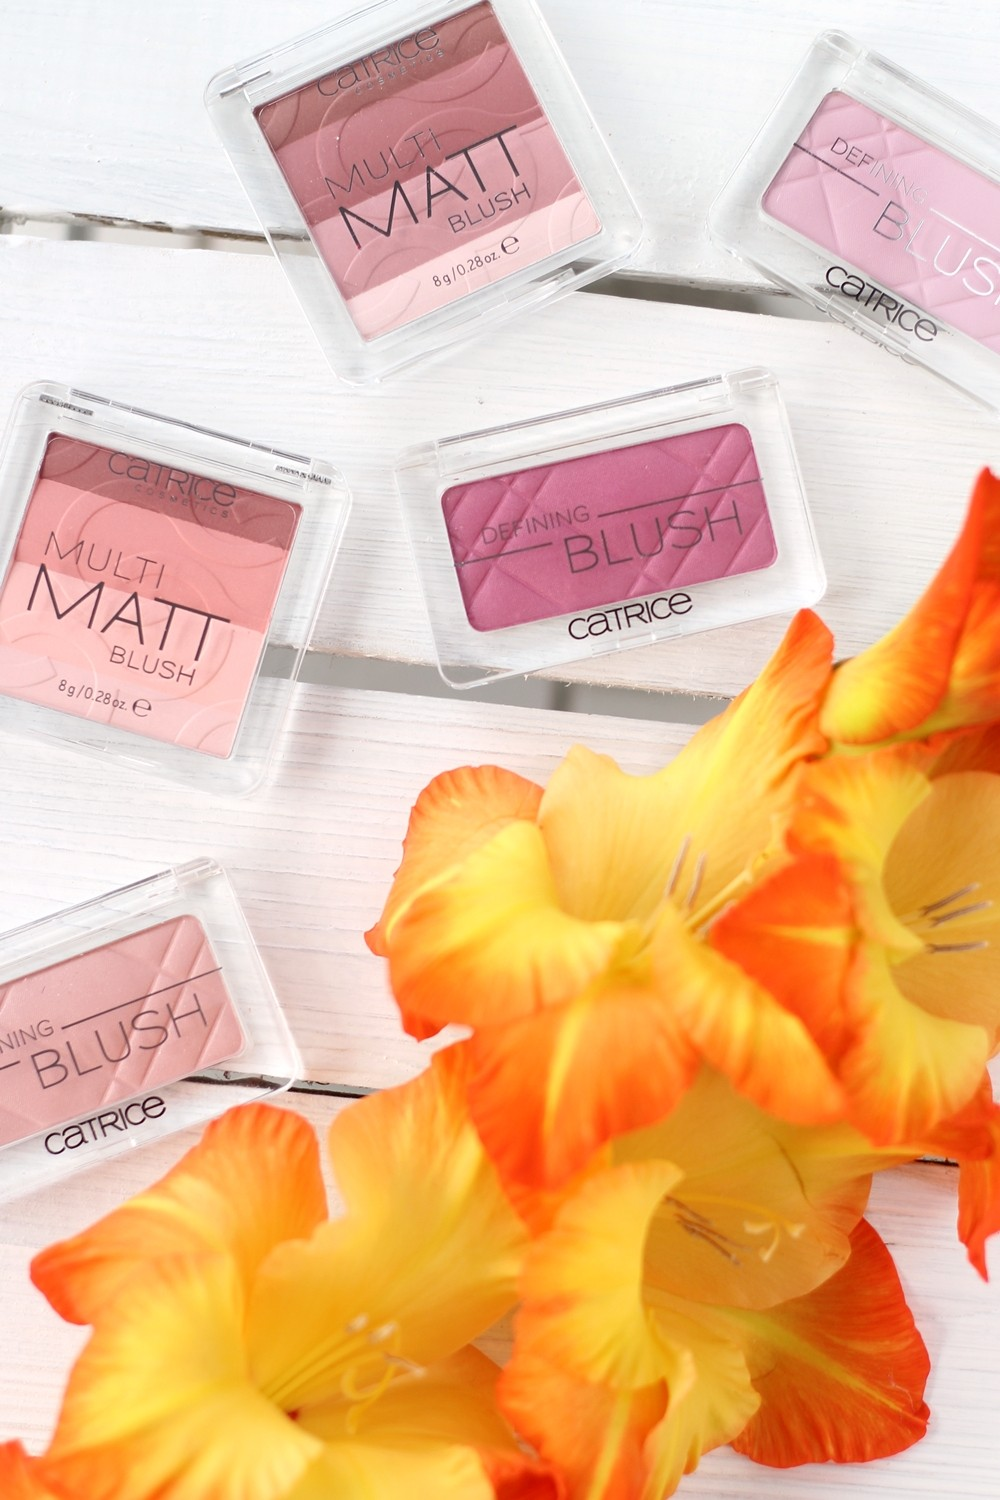 Catrice Blushes Herbst Winter Sortiment 2015